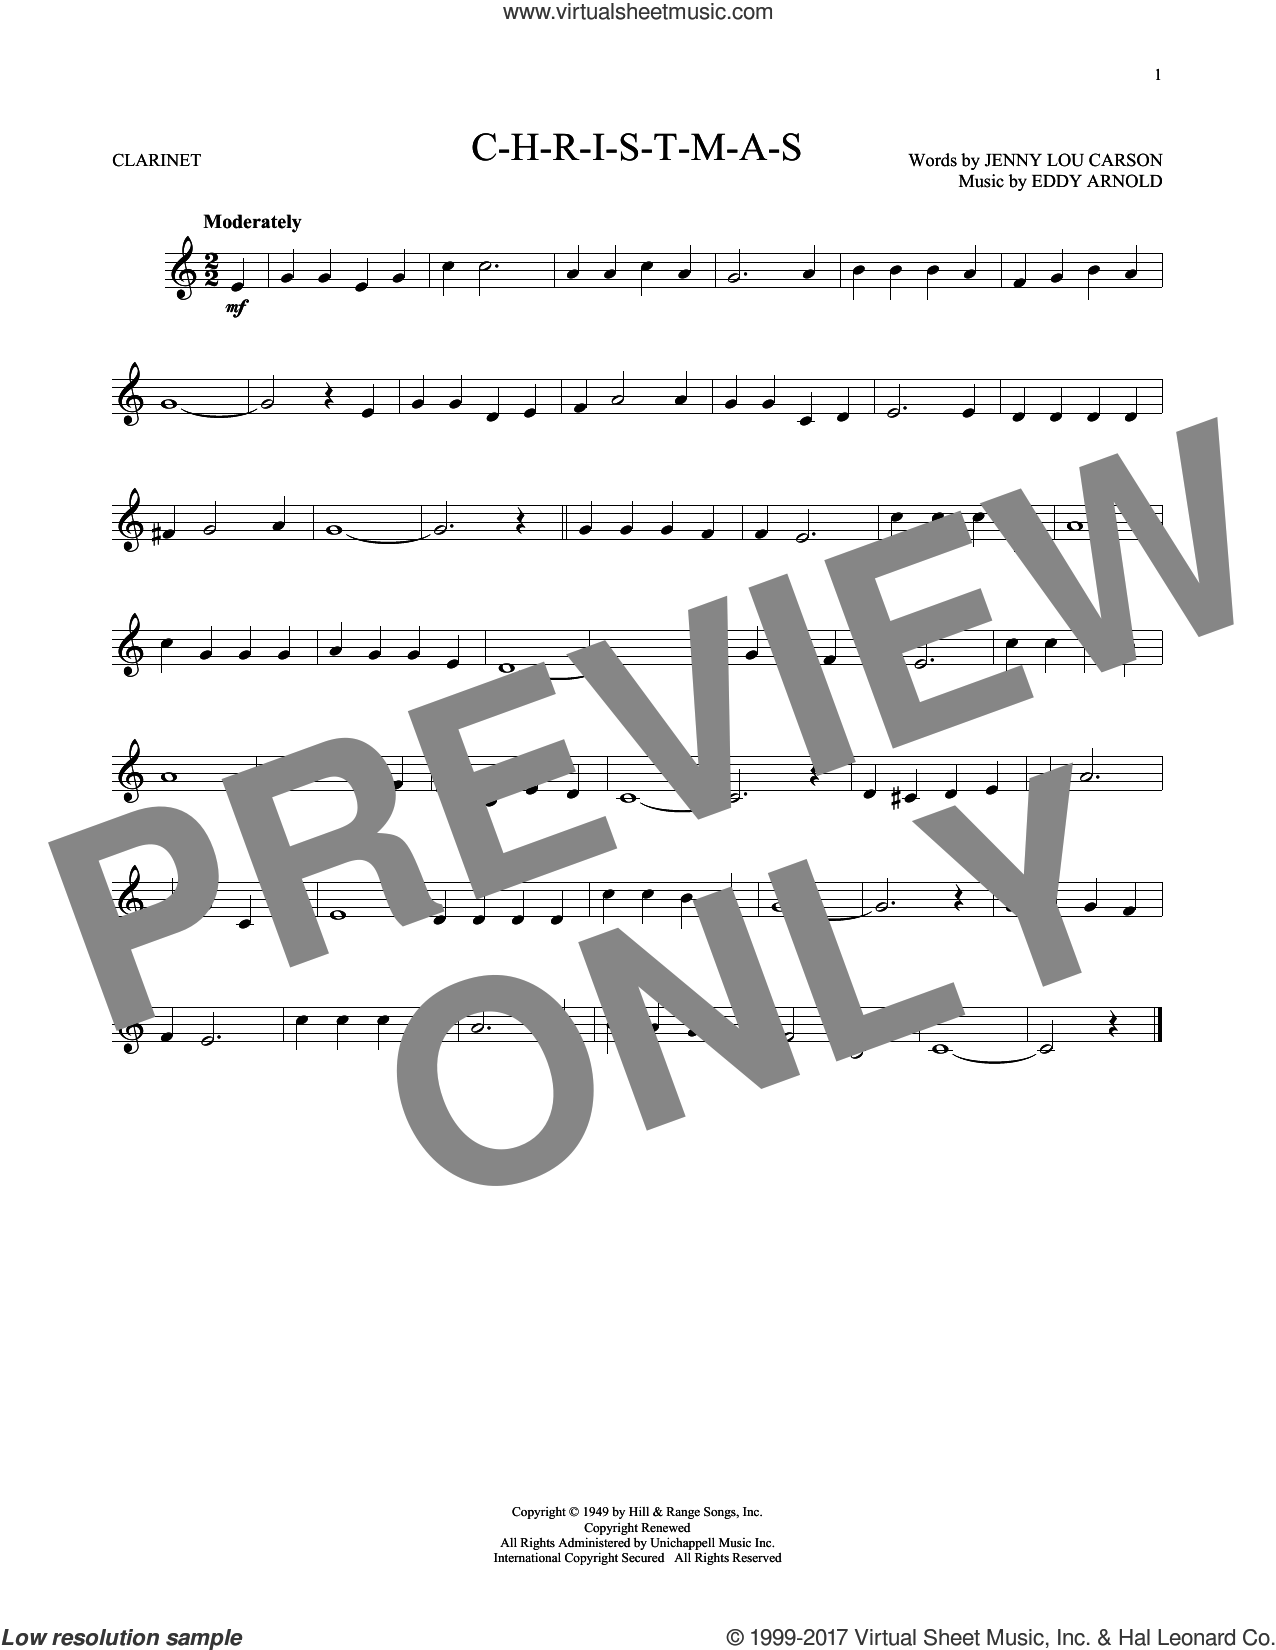 C-H-R-I-S-T-M-A-S sheet music for clarinet solo by Eddy Arnold and Jenny Lou Carson, intermediate skill level